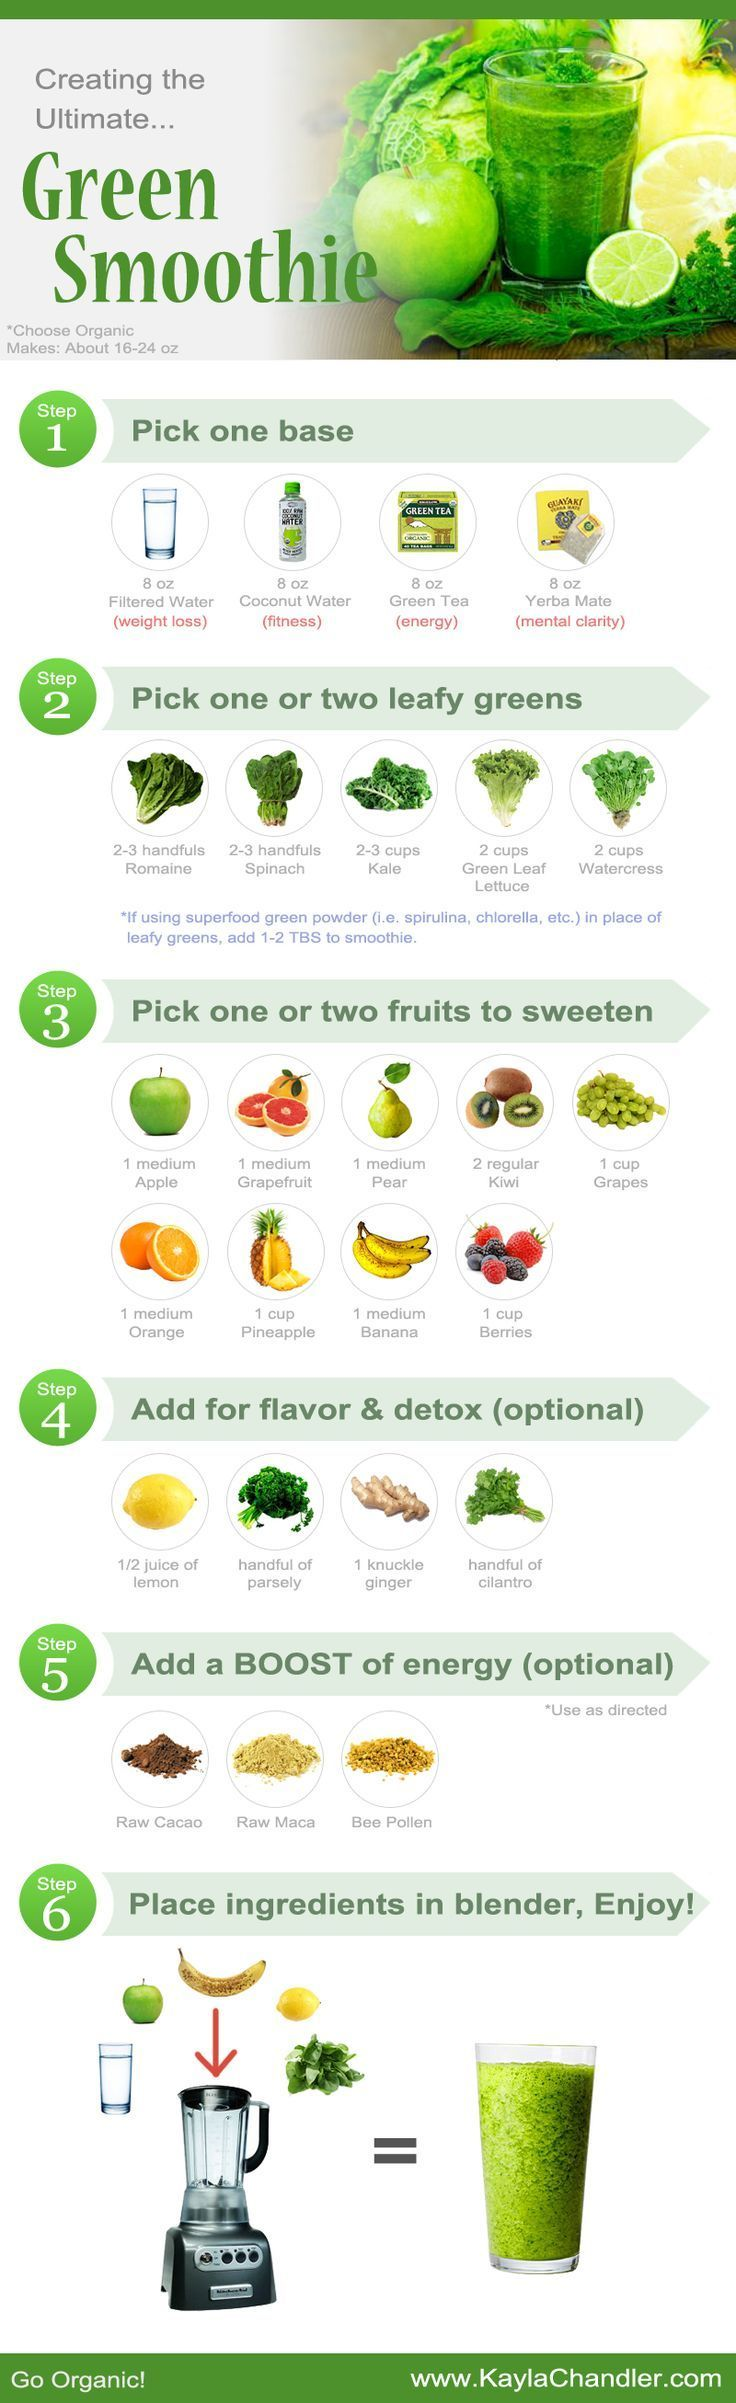 Photo of Guide to making the ultimate Green Smoothie for health, weight loss, and energy….